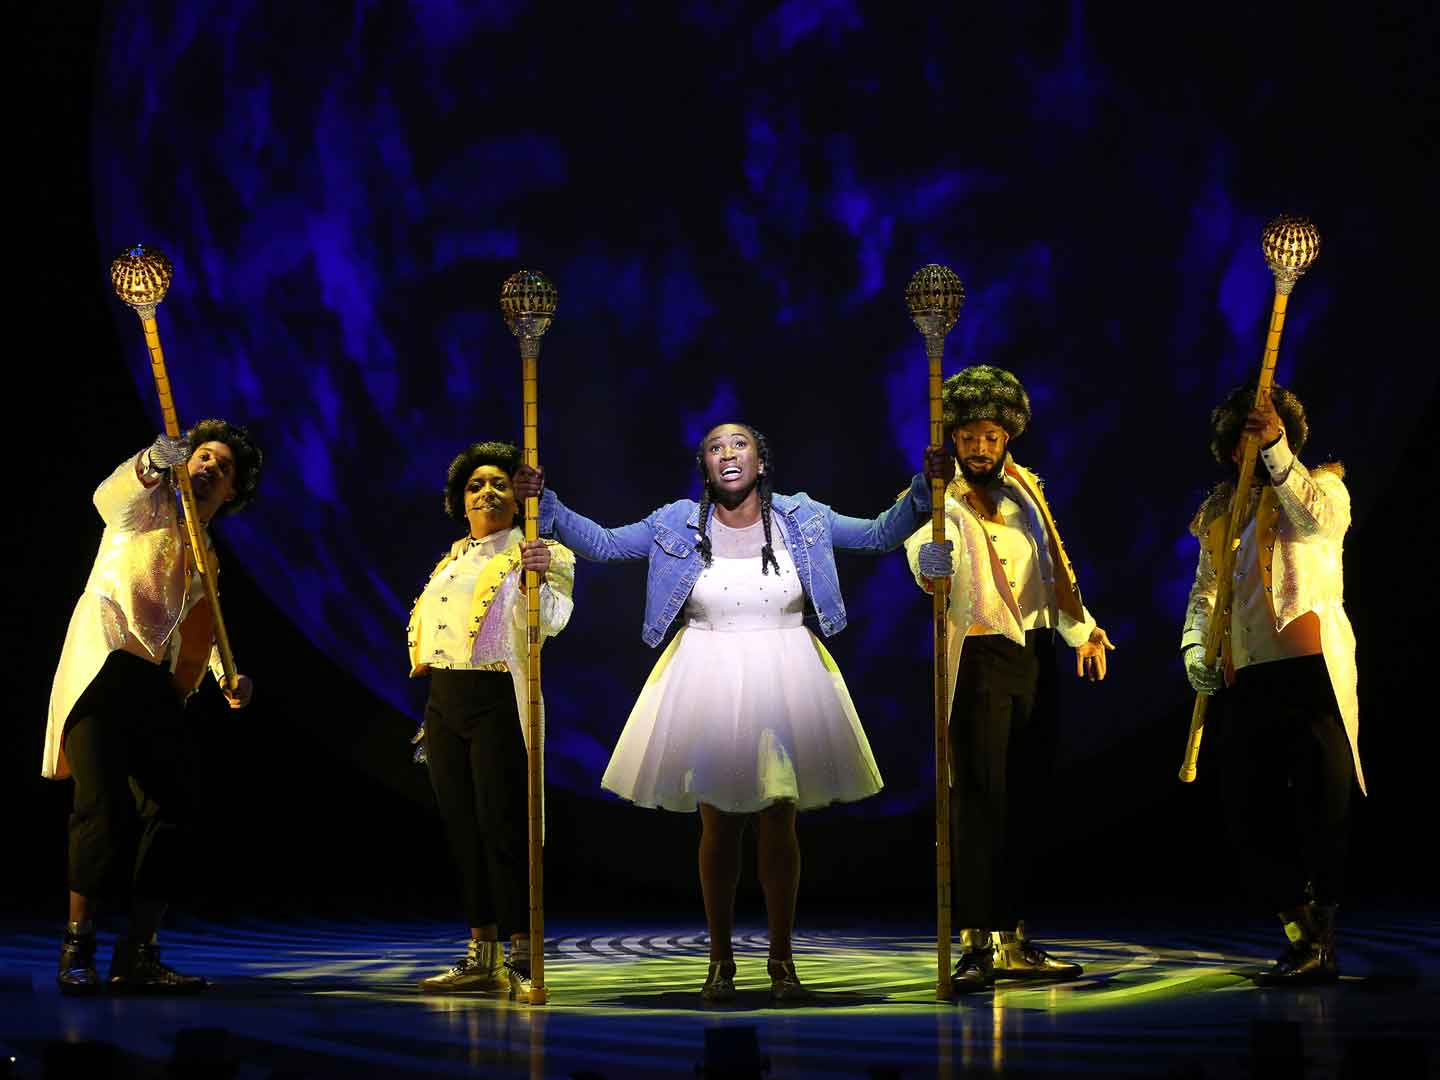 Dorothy is pictured here surrounded by the 4 actors portraying the Yellow Brick Road in The Wiz at Ford's Theatre. Dorothy wears a knee-length white dress with a long-sleeved denim jacket. Yellow Brick Road actors each have yellow-brick painted afros, sparkling buttoned band jackets with coat tails and carry septers topped with disco-balls